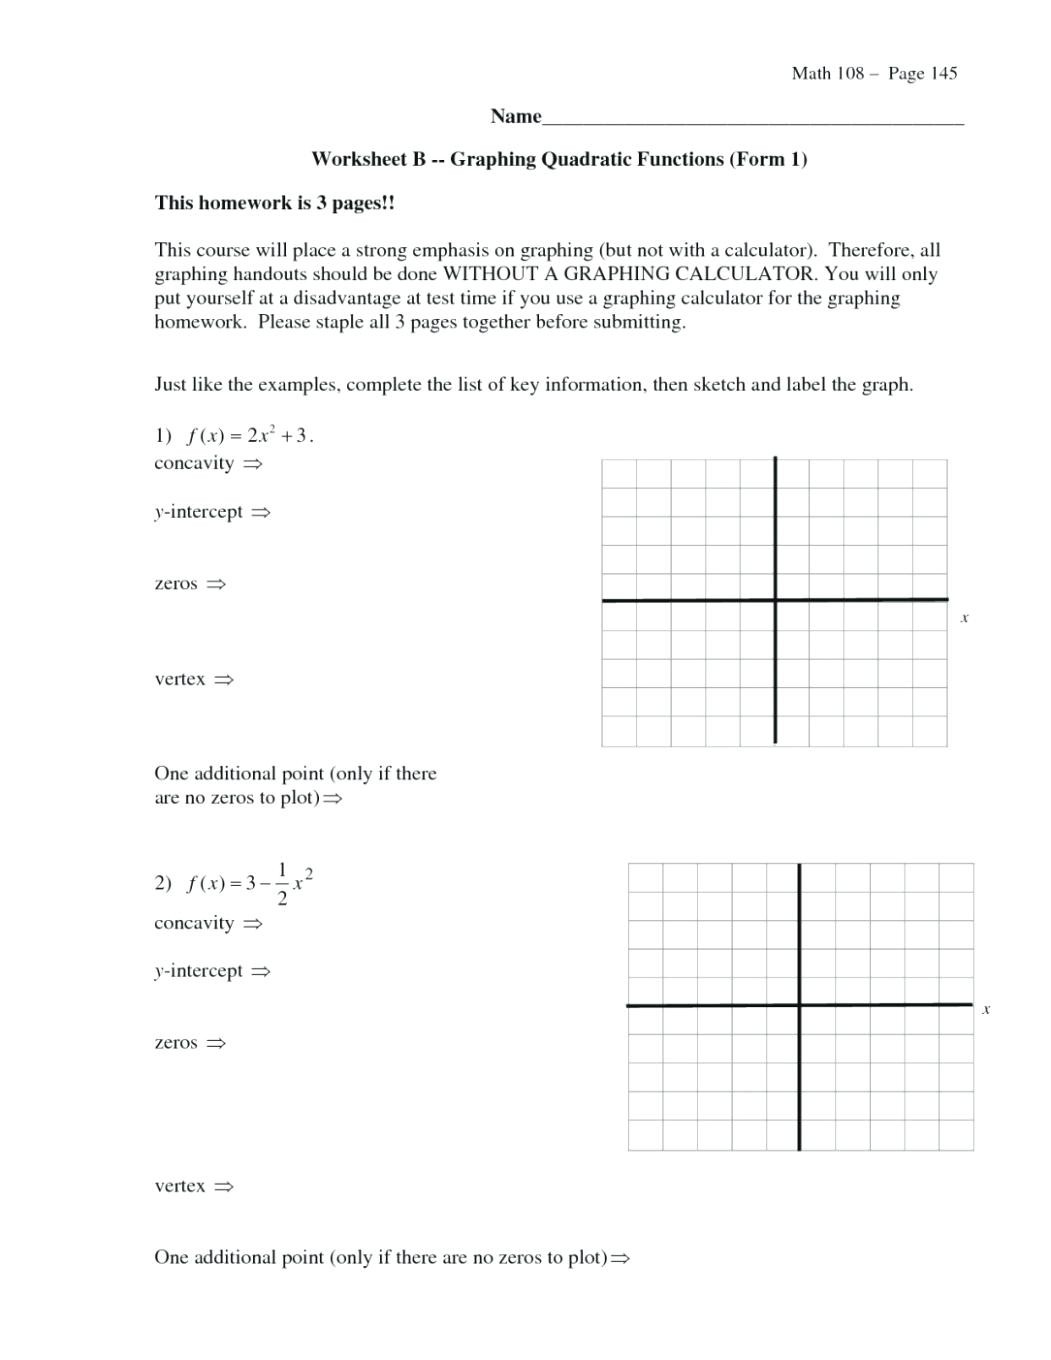 Graphing A Parabola From Vertex Form Worksheet Answer Key